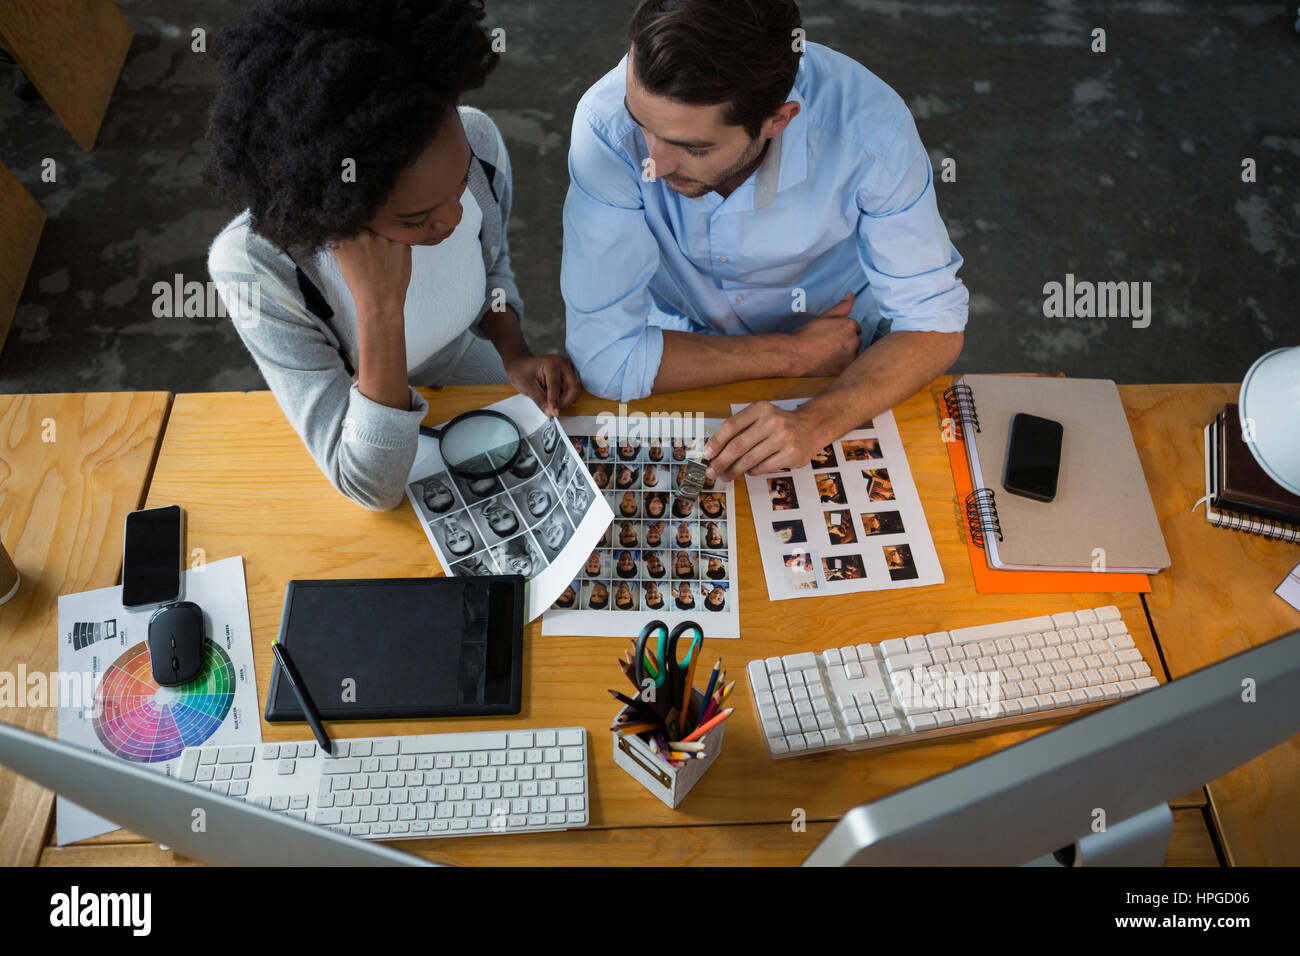 Man and woman discussing over photographs in creative office - Stock Image